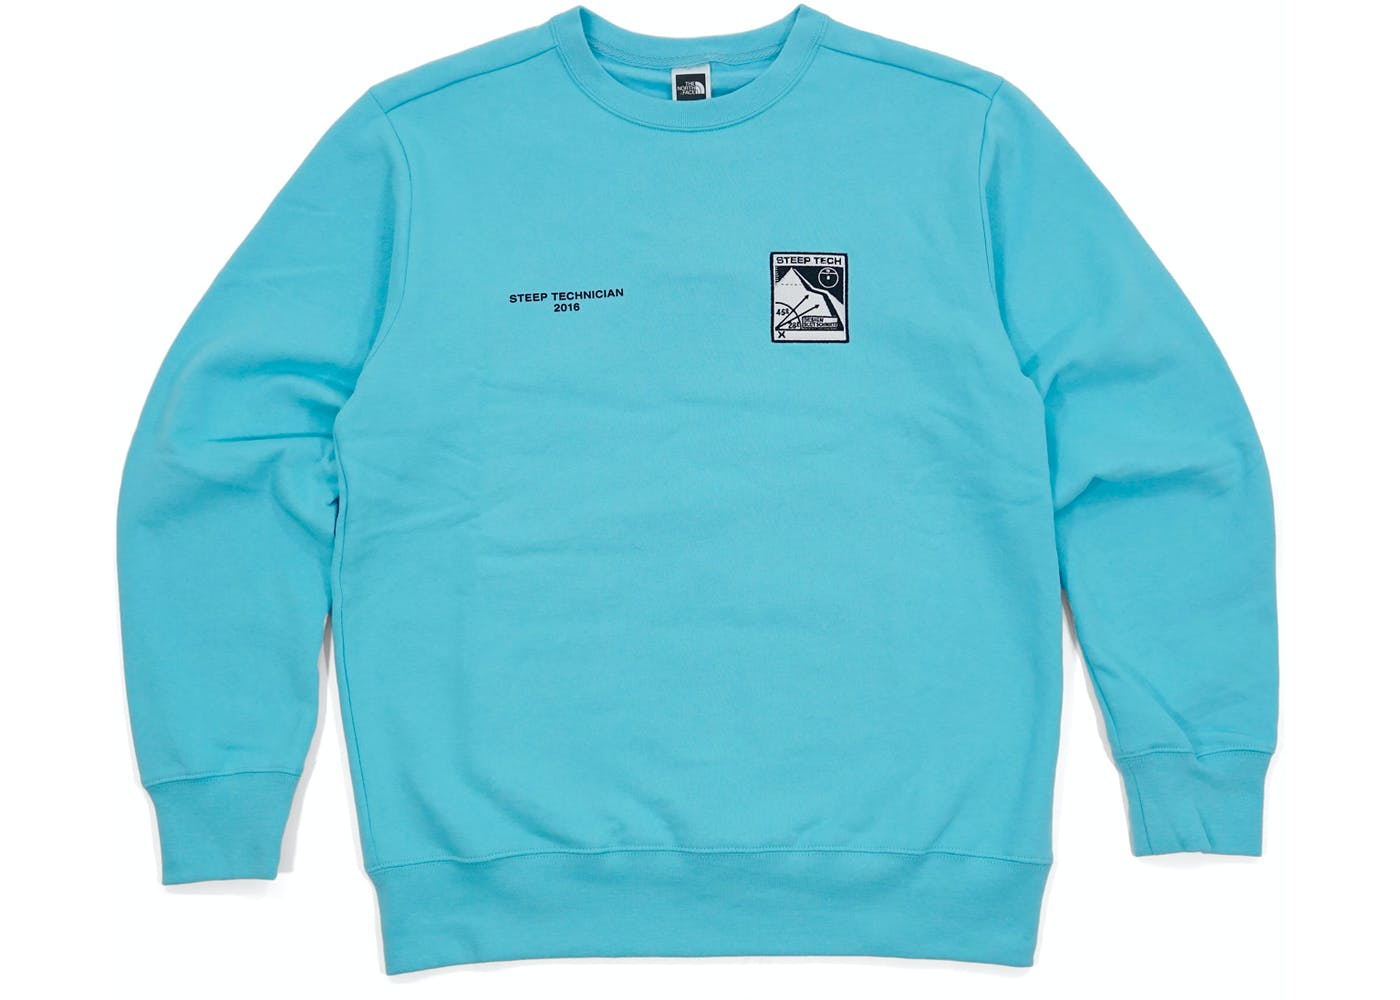 The North Face Steep Tech Crewneck Lht Blue